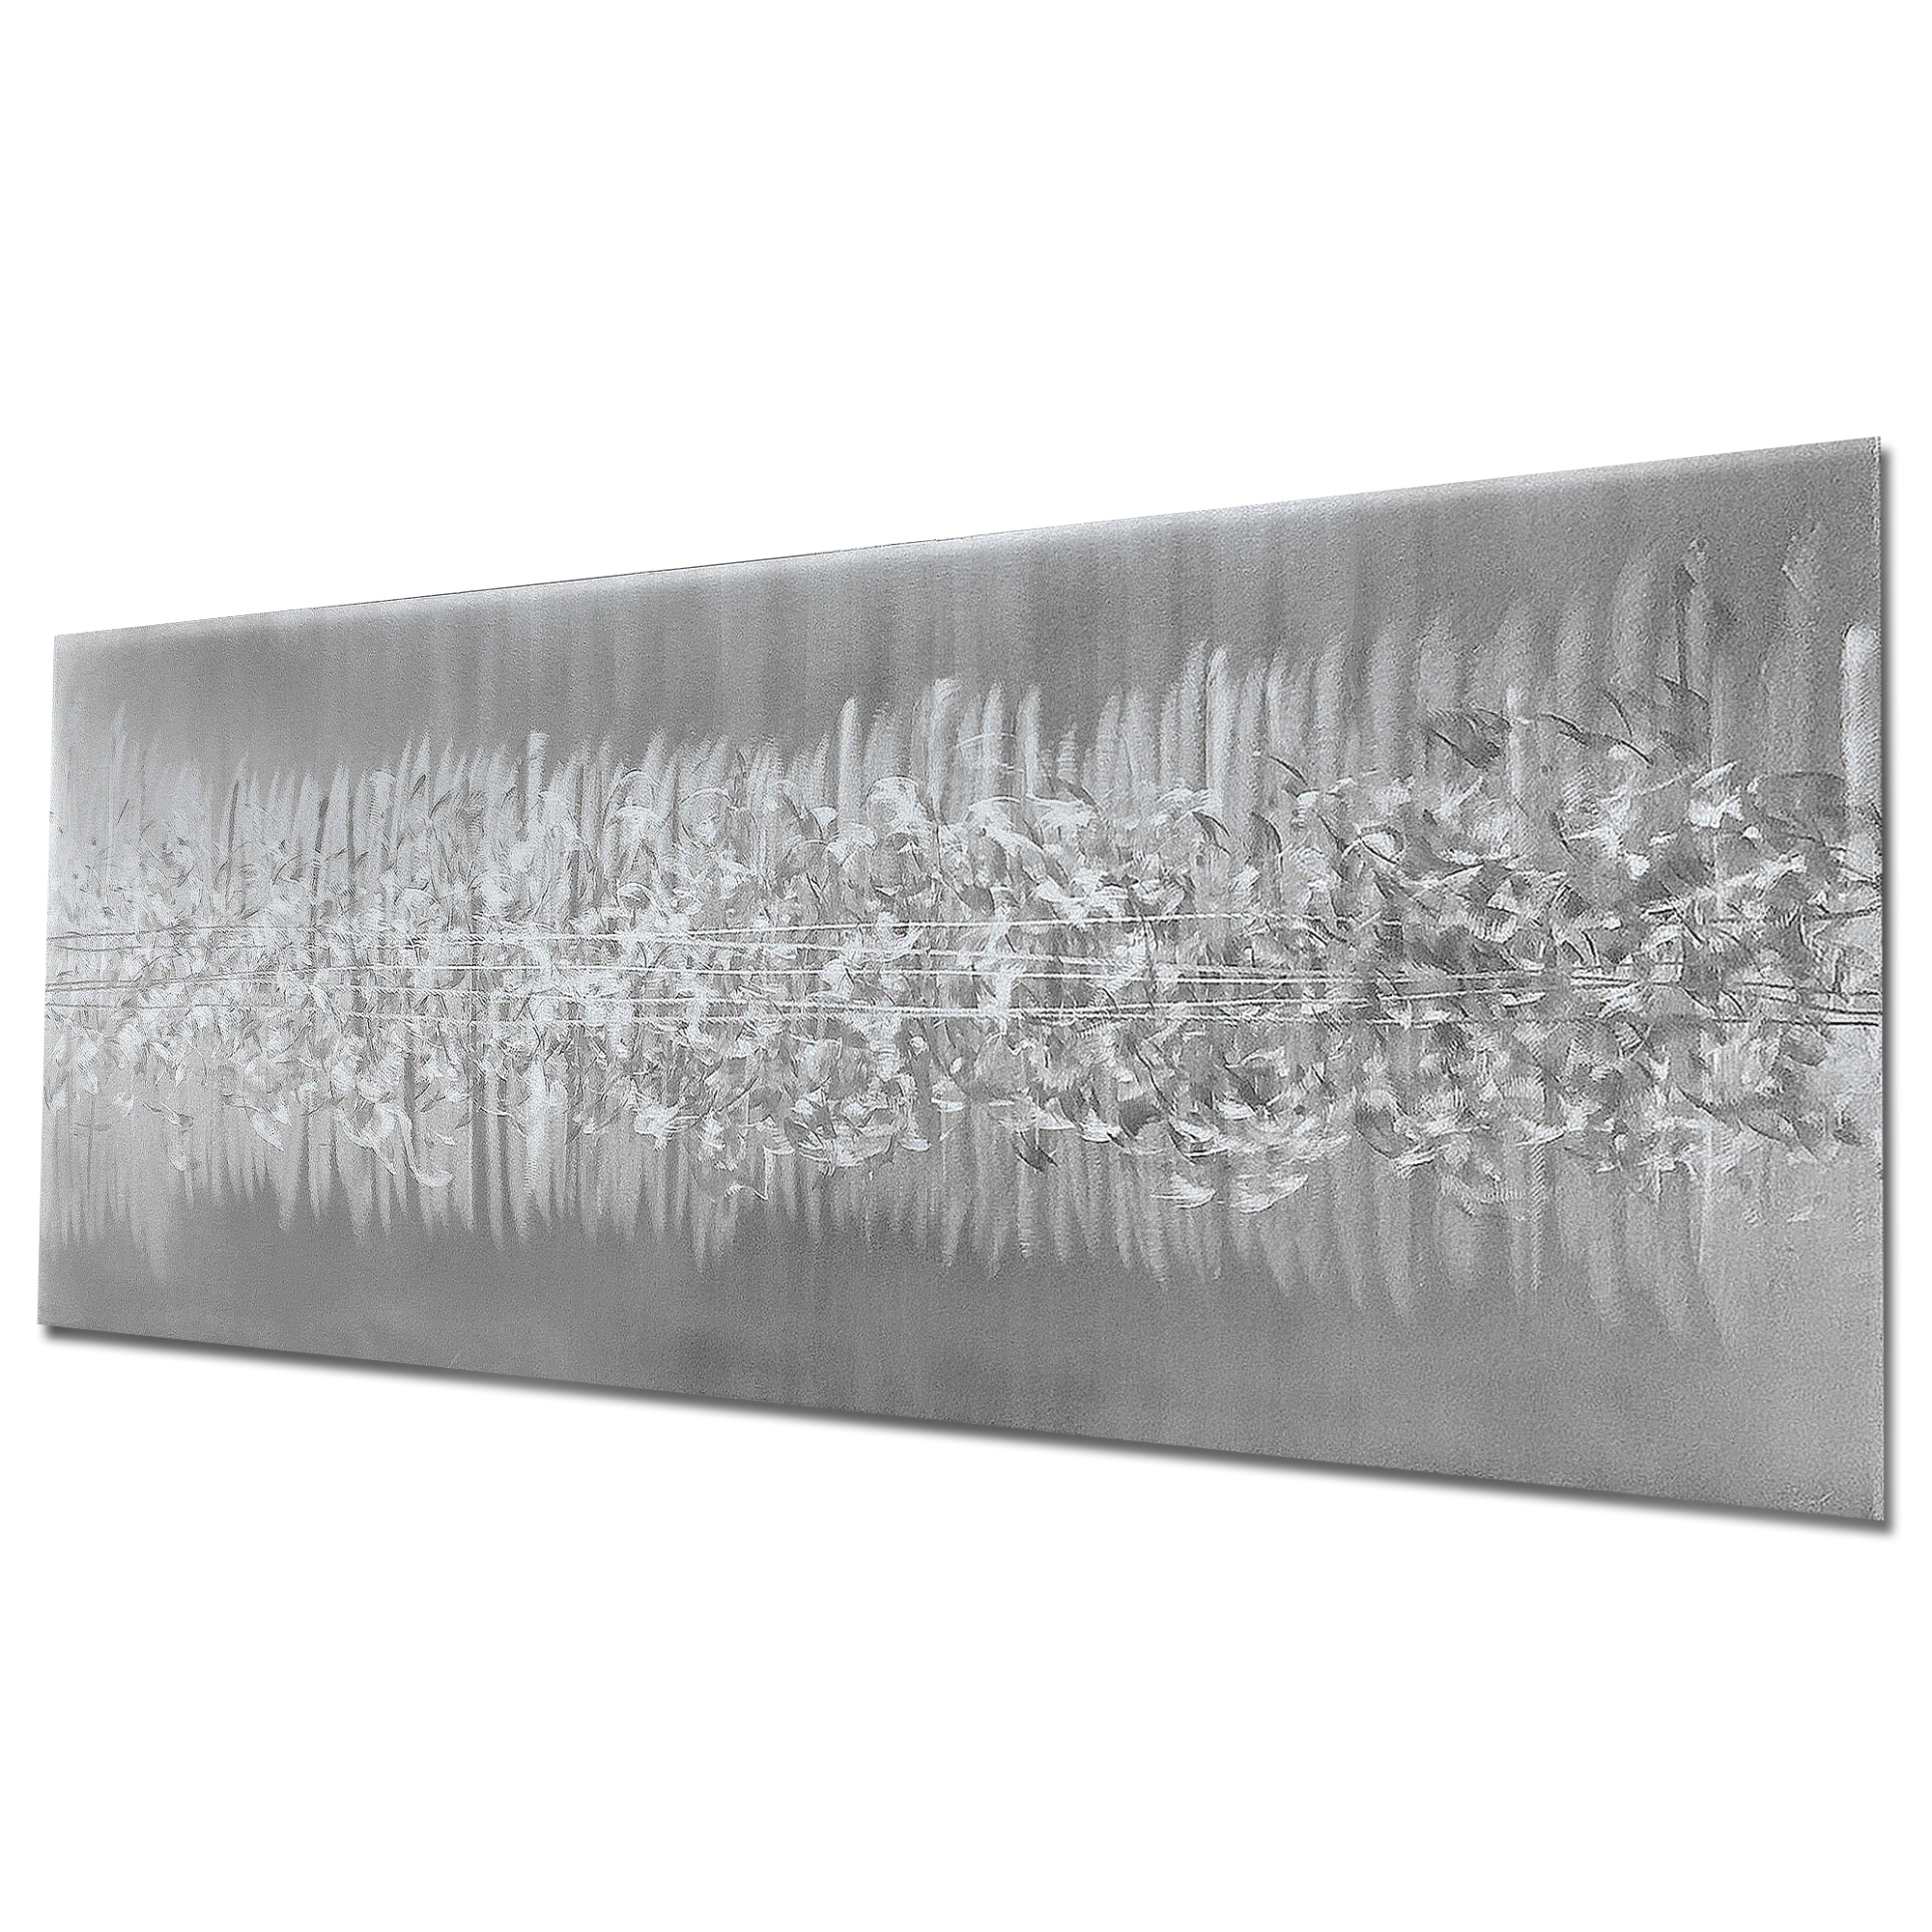 Static Silver by Helena Martin - Original Abstract Art on Ground Metal - Image 3